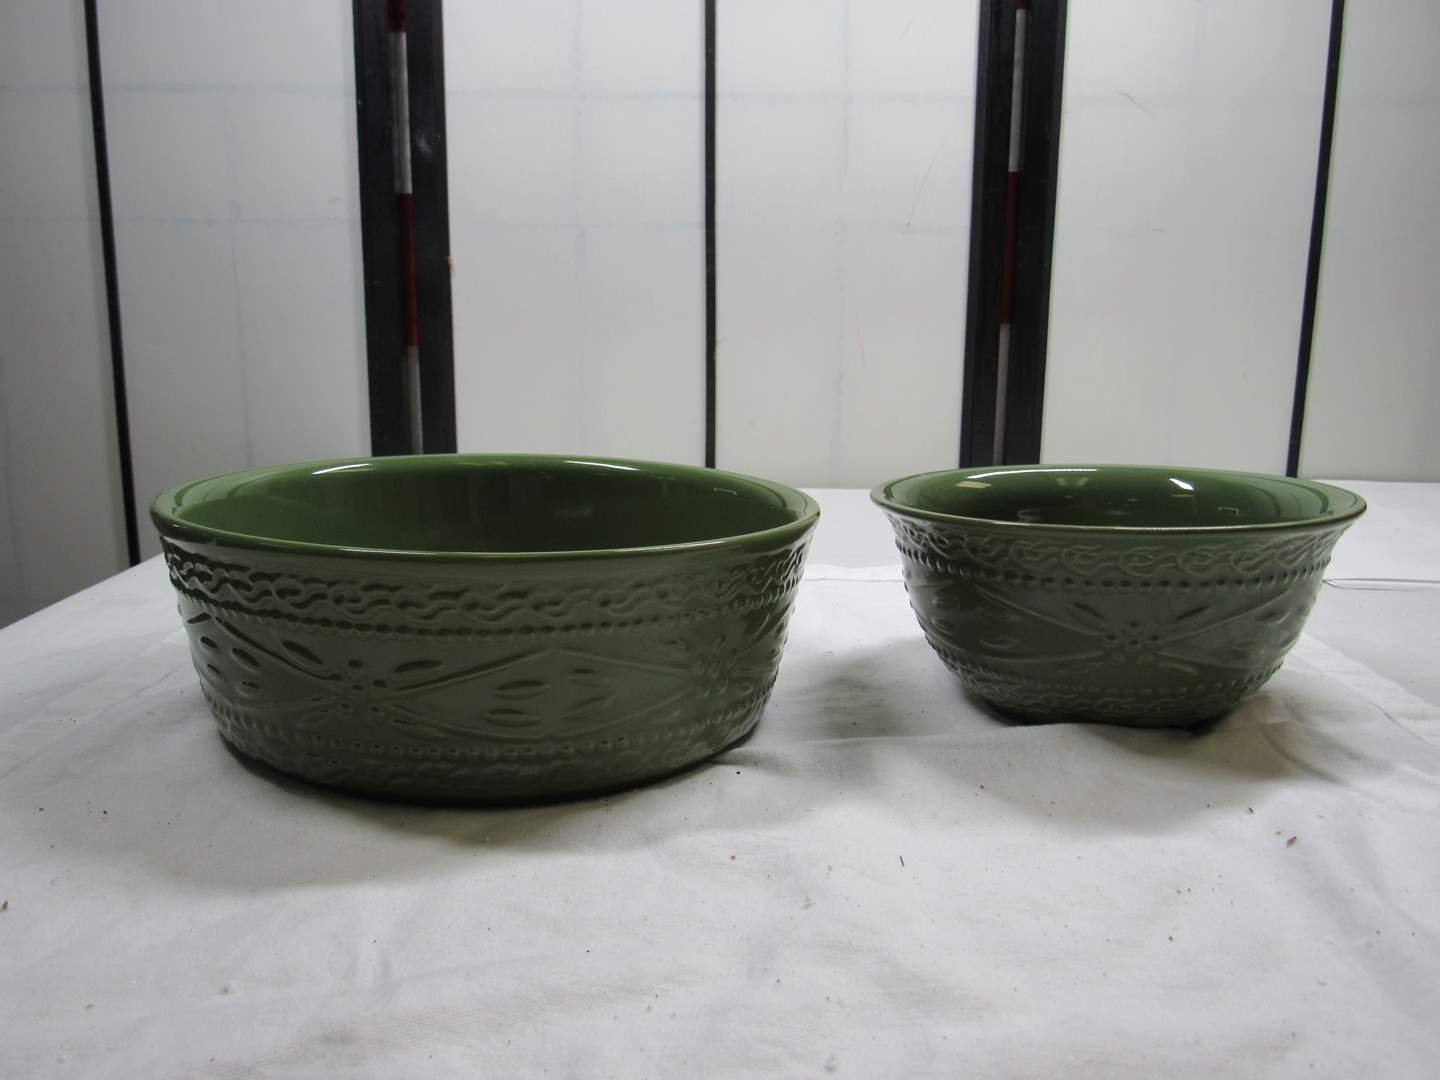 Lot # 89  2 PCs Temp-Tations 1 dog bowl? & 1 small mixing bowl (main image)